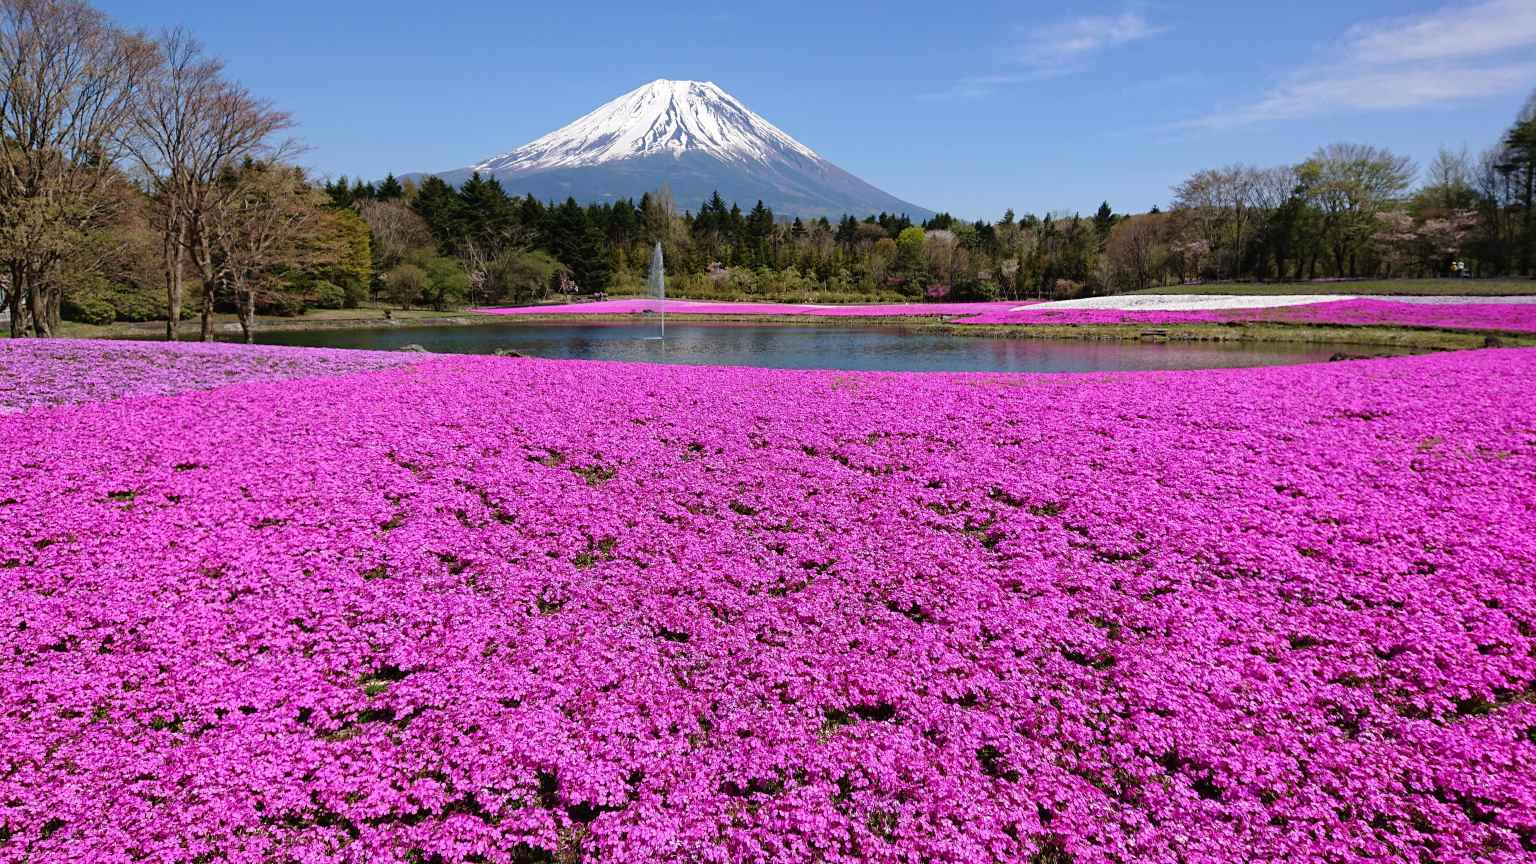 Mt-Fuji-Shibazakura-sakura-festival-2021-photos-Japanese-news-Japan-10.jpg